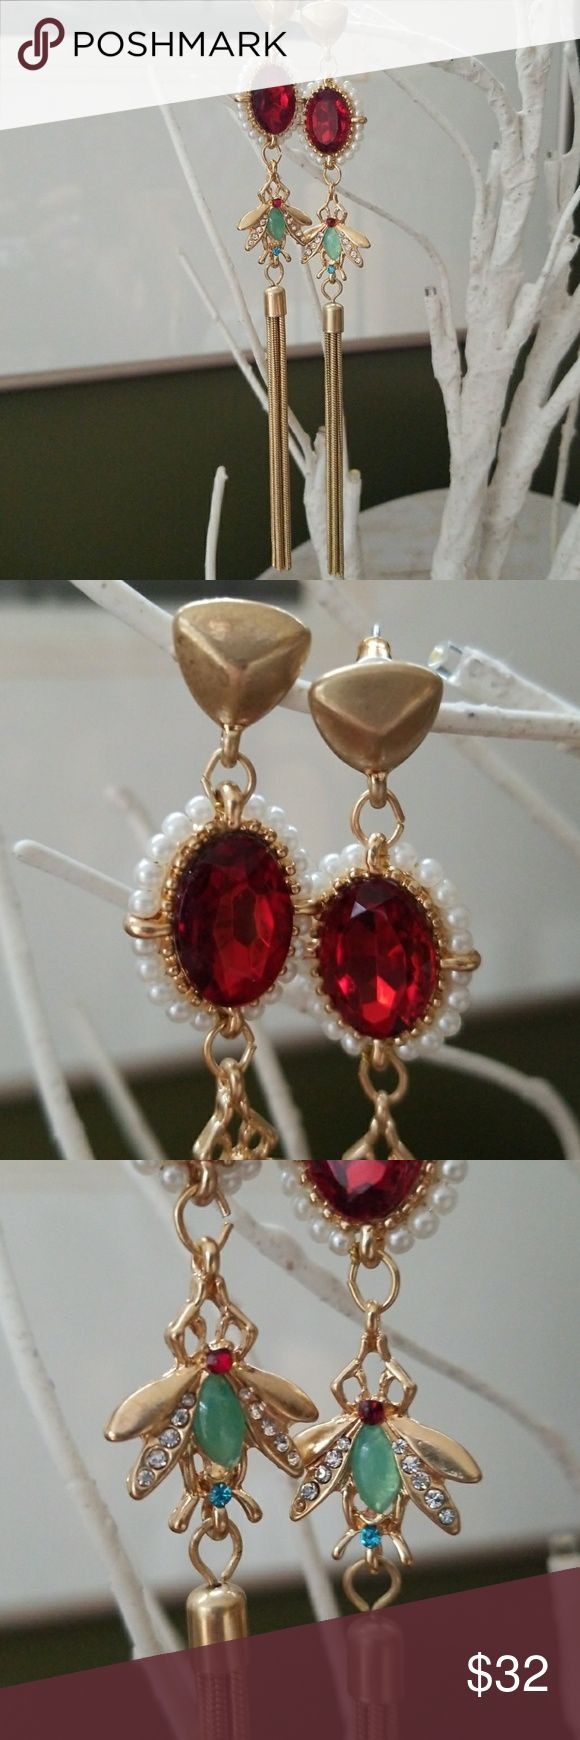 Vintage Earrings Insect Art Nouveau Victorian New Old Stock  Goldtone Pierced posts Mint condition  Crystal glass, acrylic and faux pearls Gorgeous Red Ruby Color focal stone Long shoulder duster style but very lightweight  Stunning! Get Noticed! Vintage Jewelry Earrings